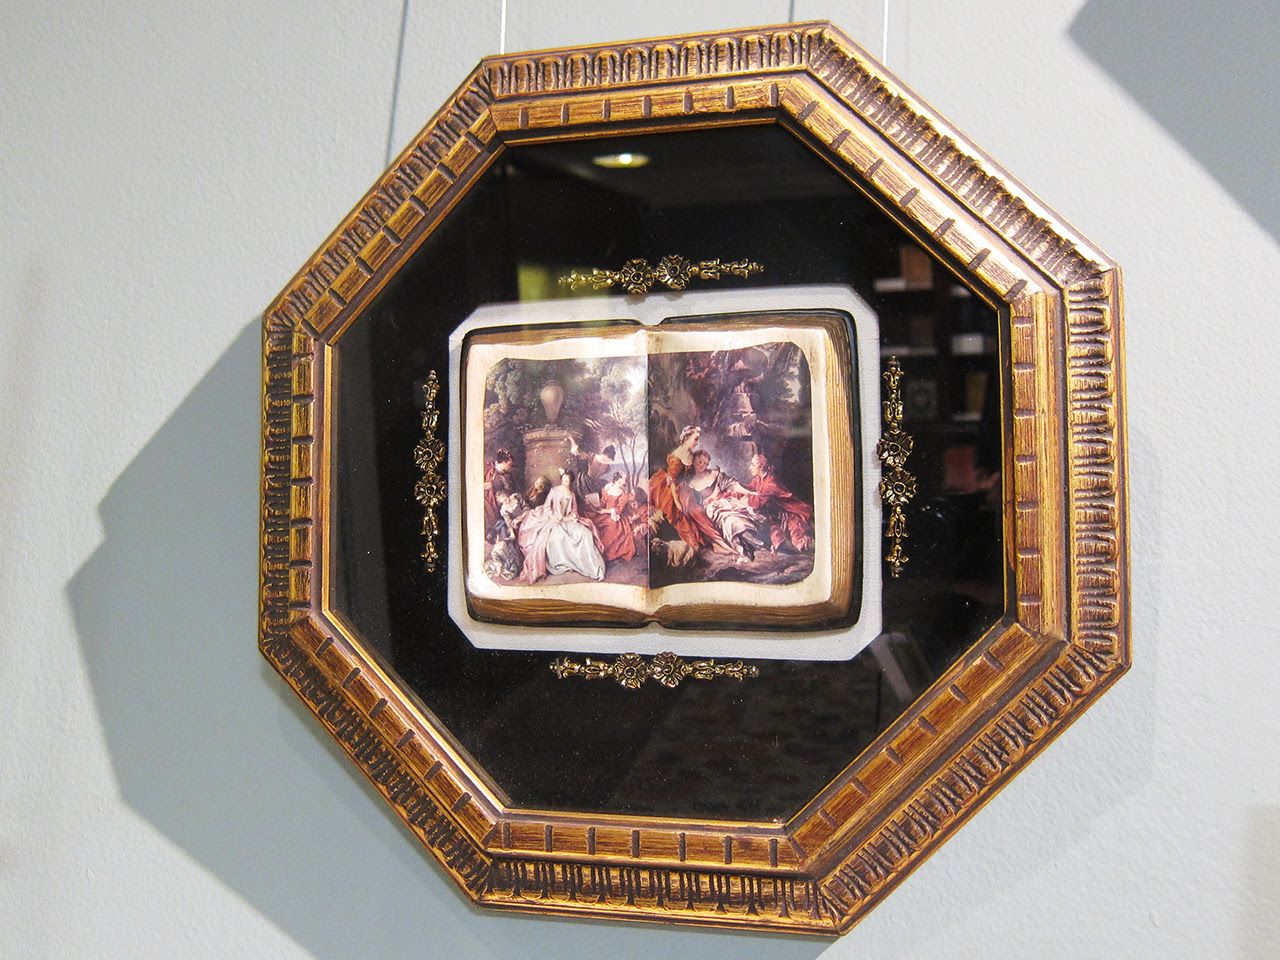 A framed faux box with three-dimensional open books showing decoupage images of famosu European paintings (mid-20th c.)